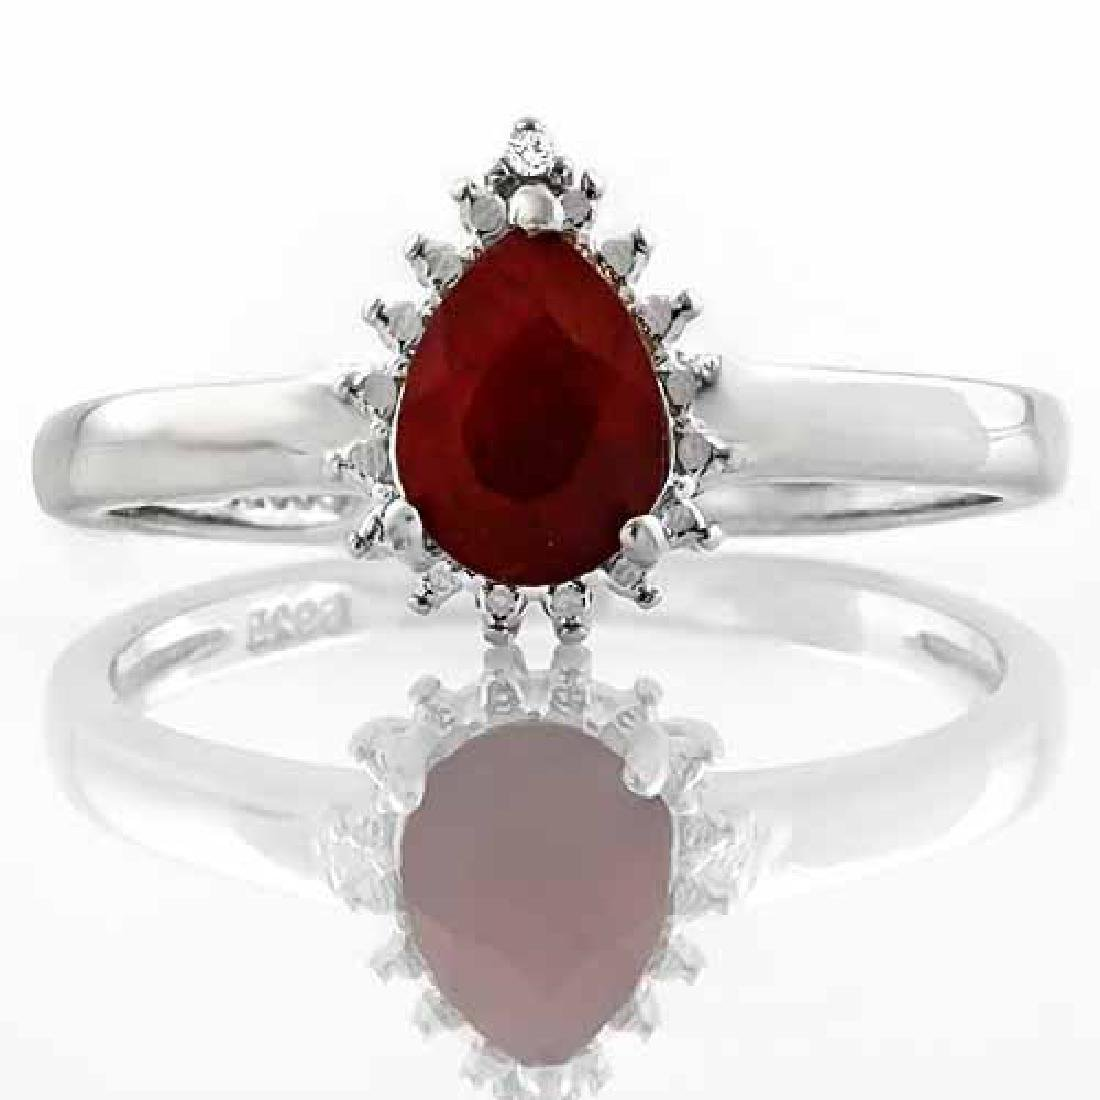 3/4 CARAT GENUINE RUBY & DIAMOND 925 STERLING SILVER RI